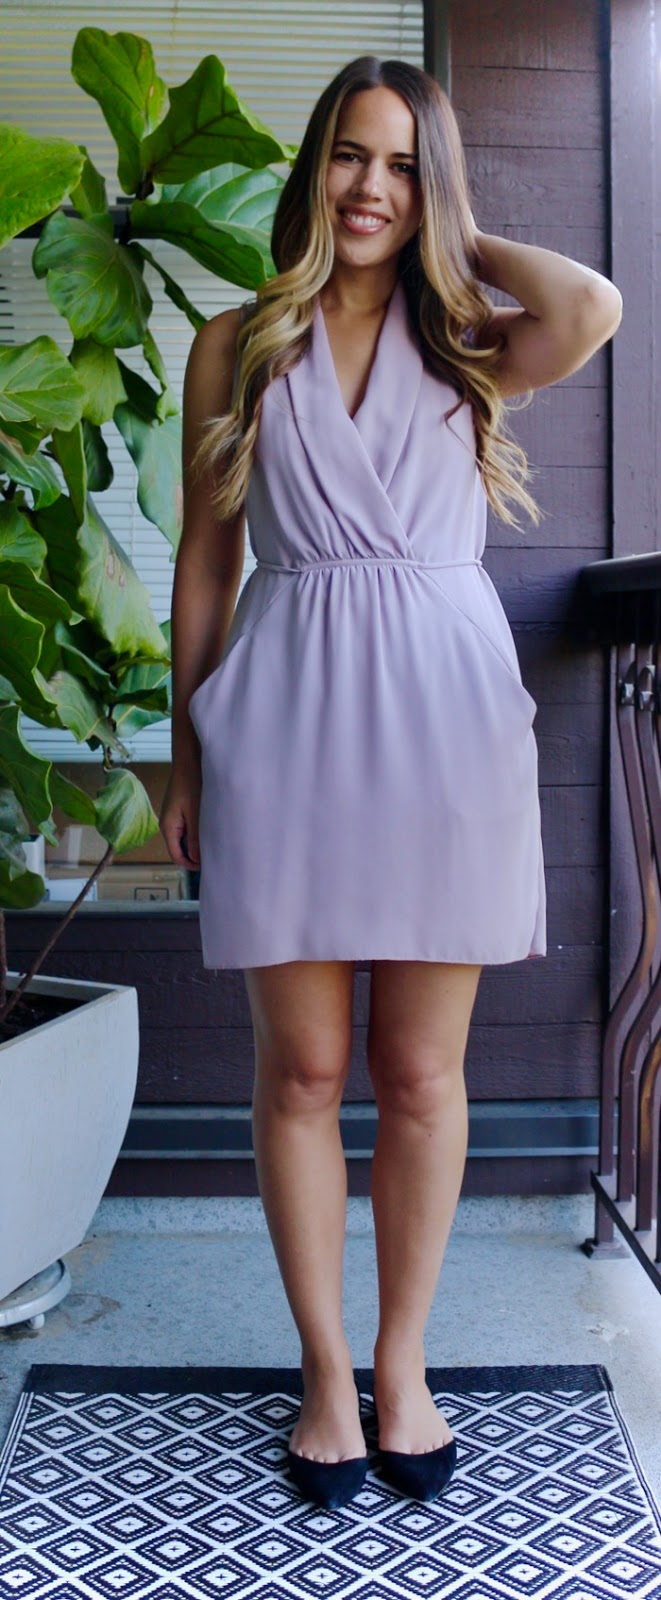 Jules in Flats - Aritzia Sabine Dress